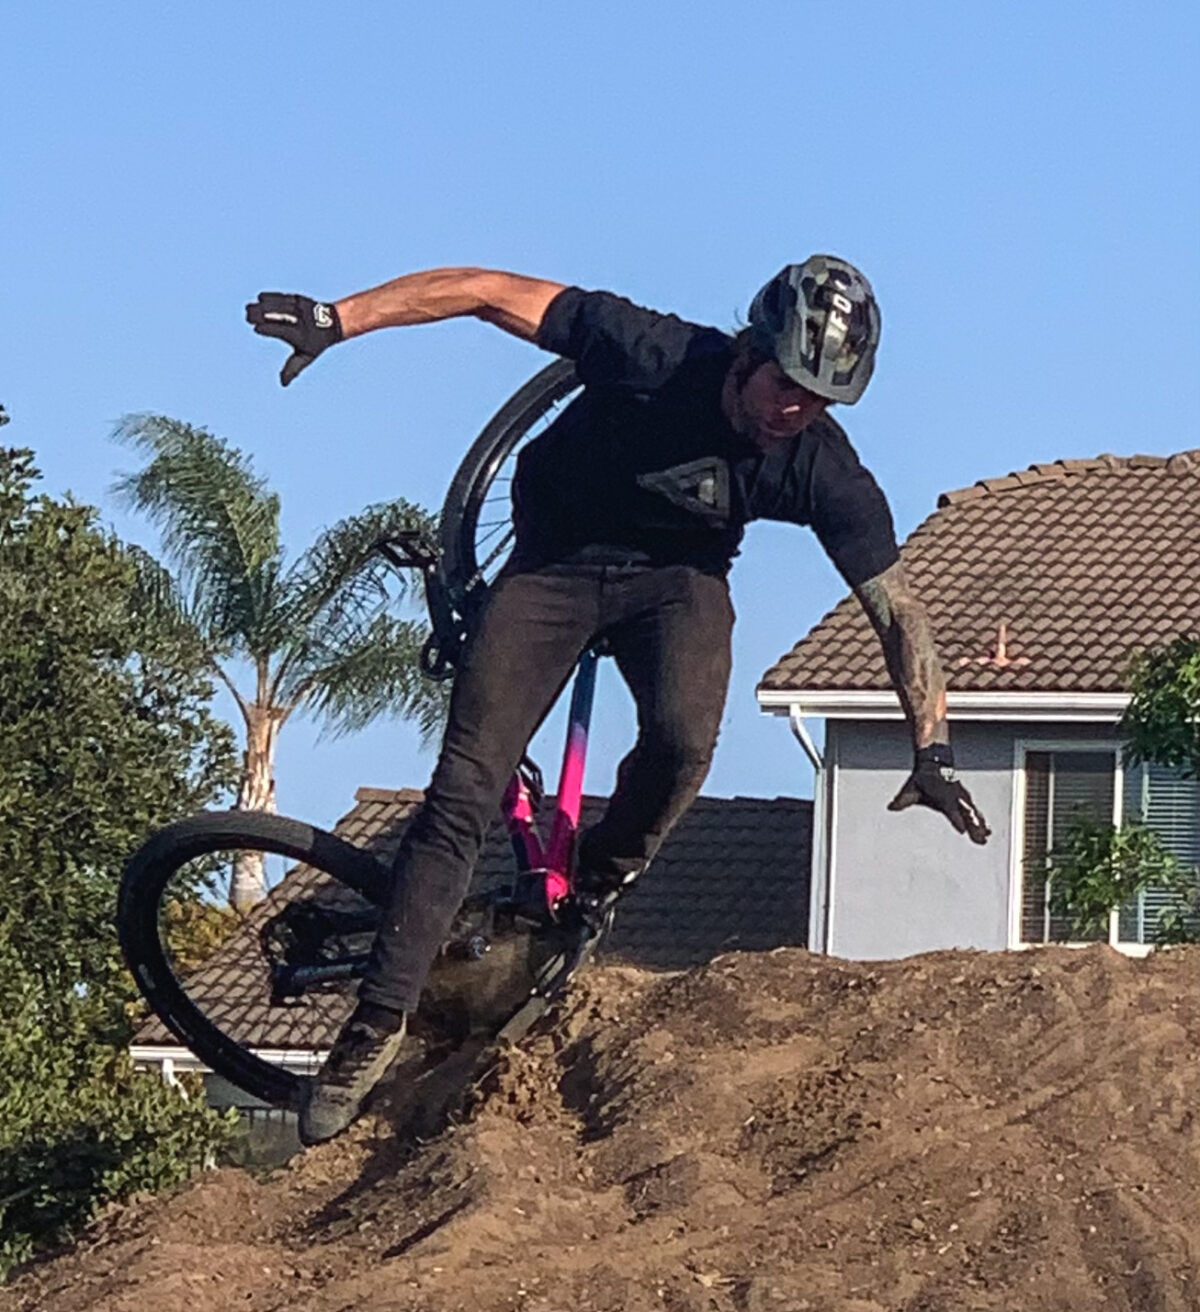 Learning 360's